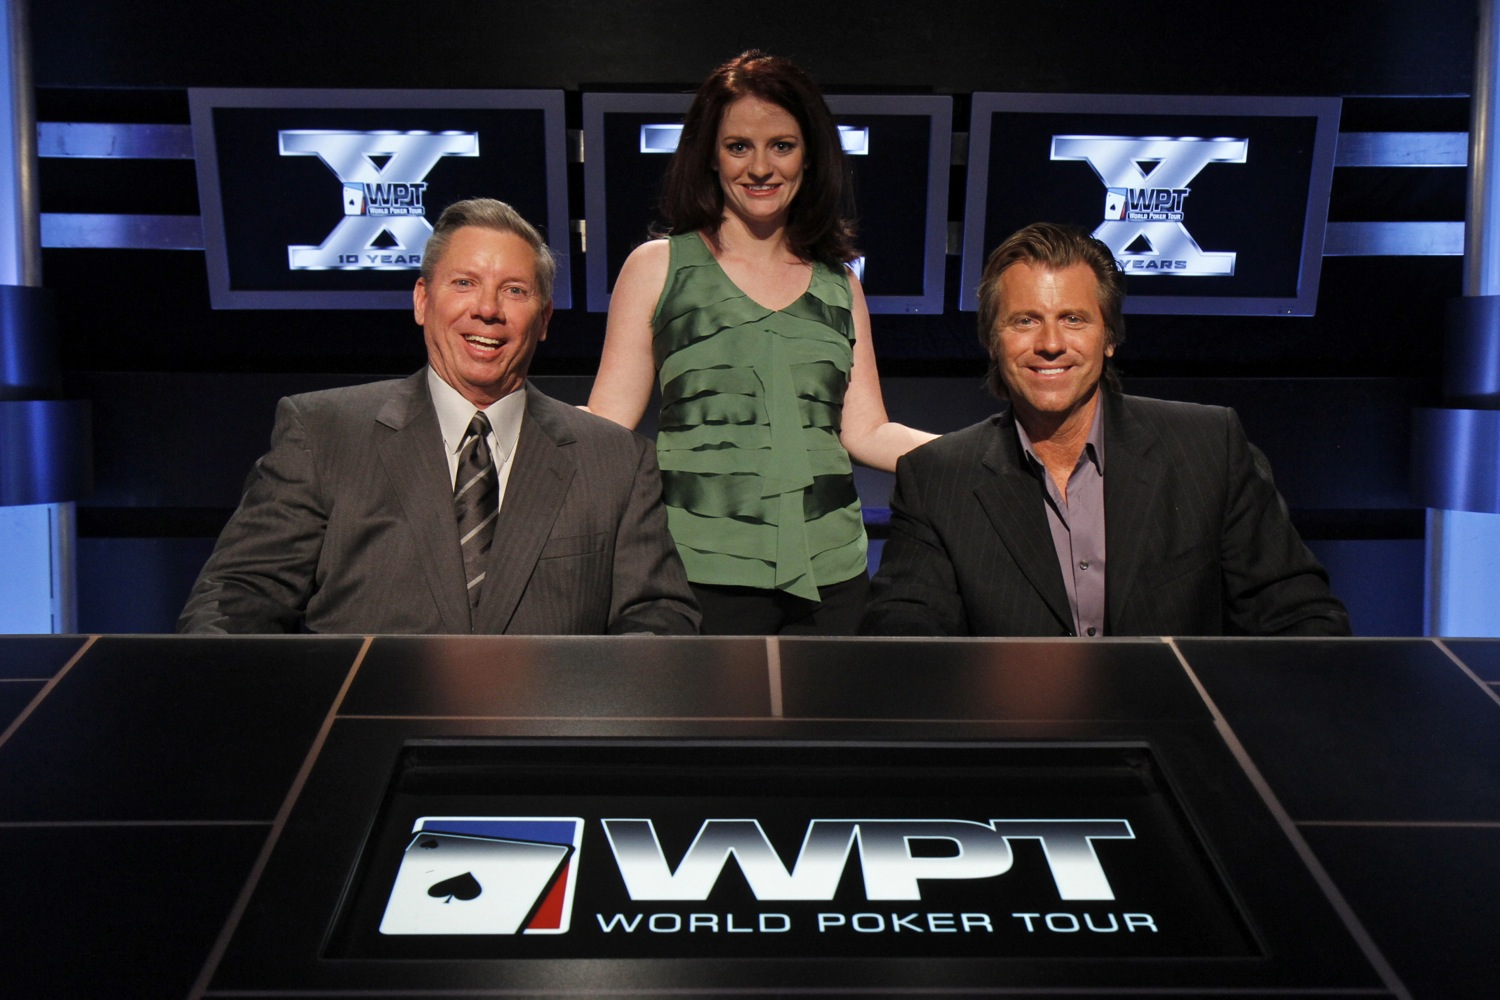 Photo:  Jessica poses with Mike Sexton and Vince Van Patten after her final WPT event.